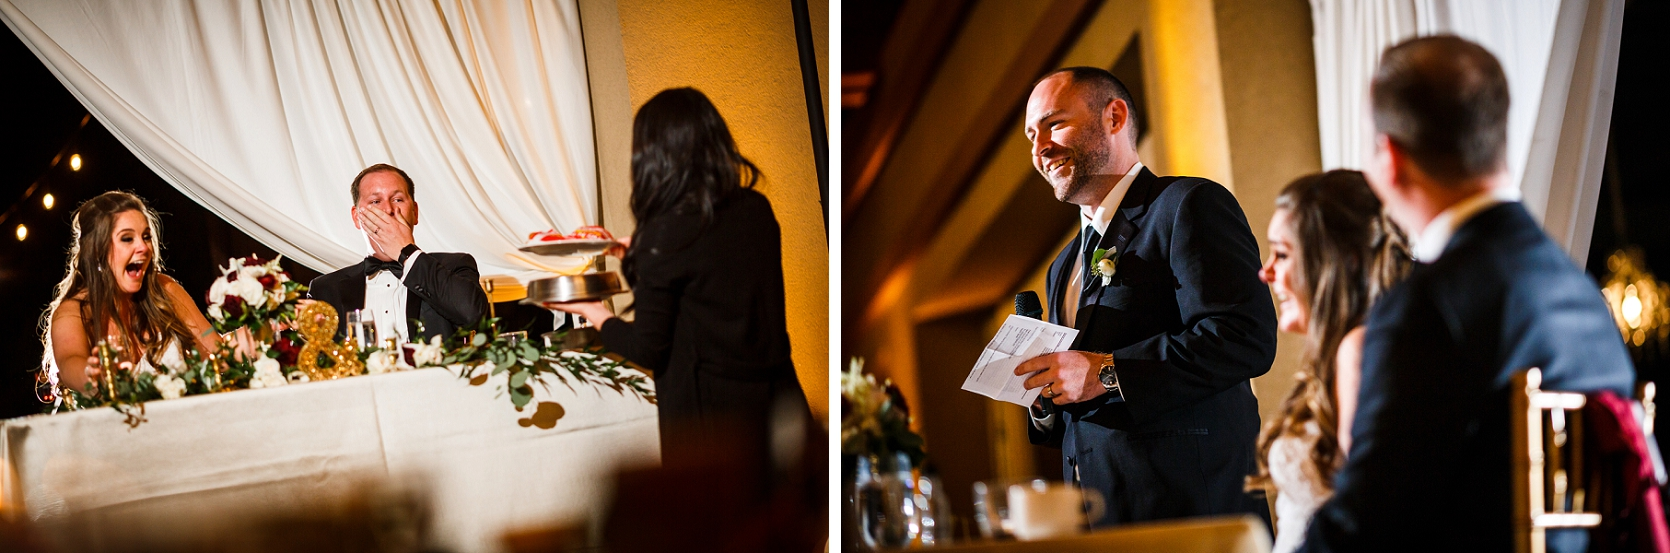 Omni_Interlocken_Hotel_Wedding_0038